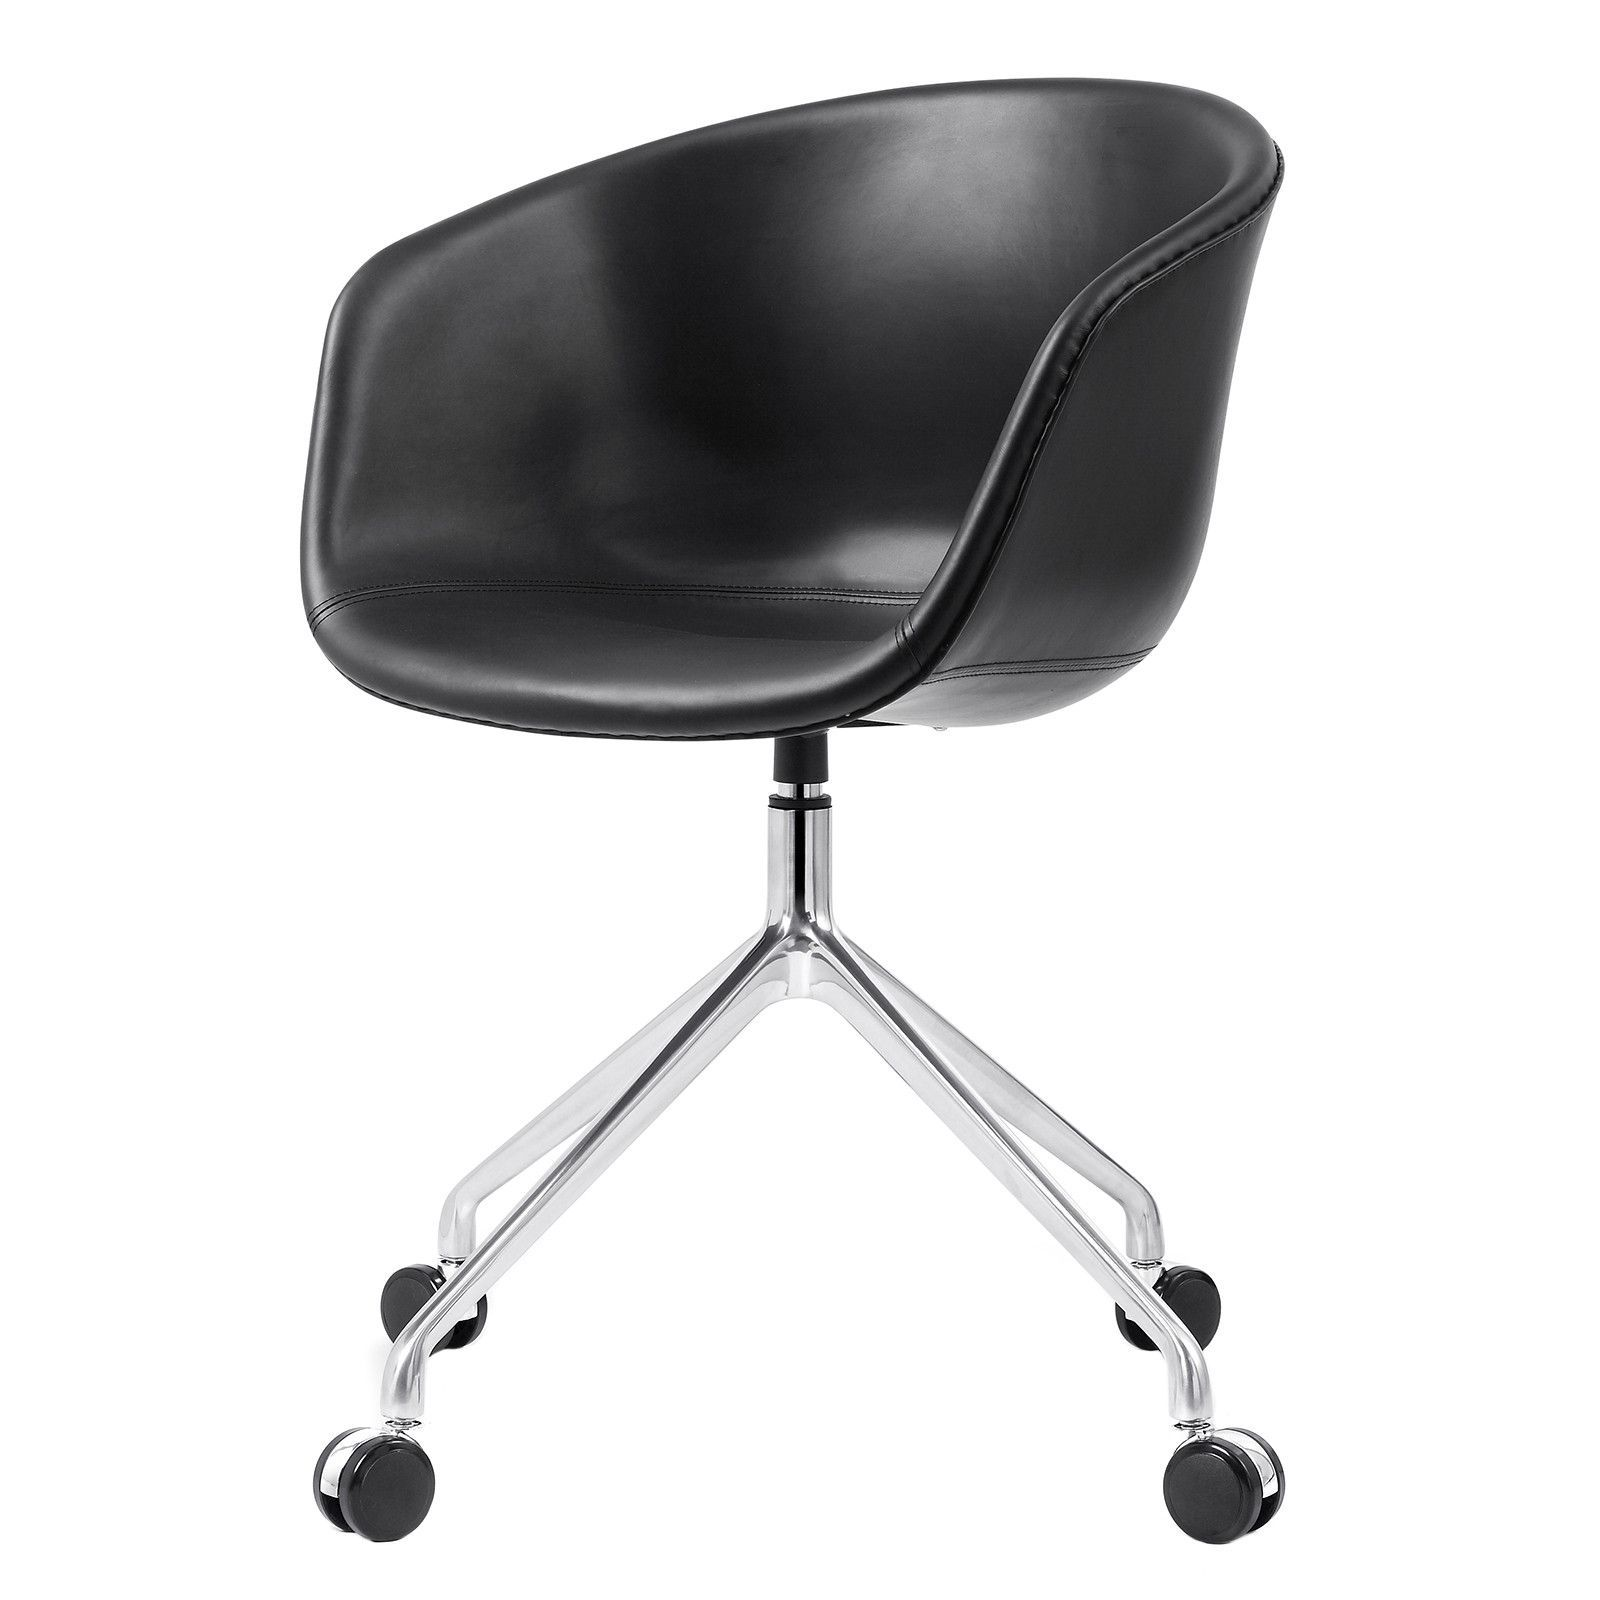 M26 Scandinavian Style Leather Office Chair Color Options Modern Office Chair Office Chair Scandinavian Office Chairs